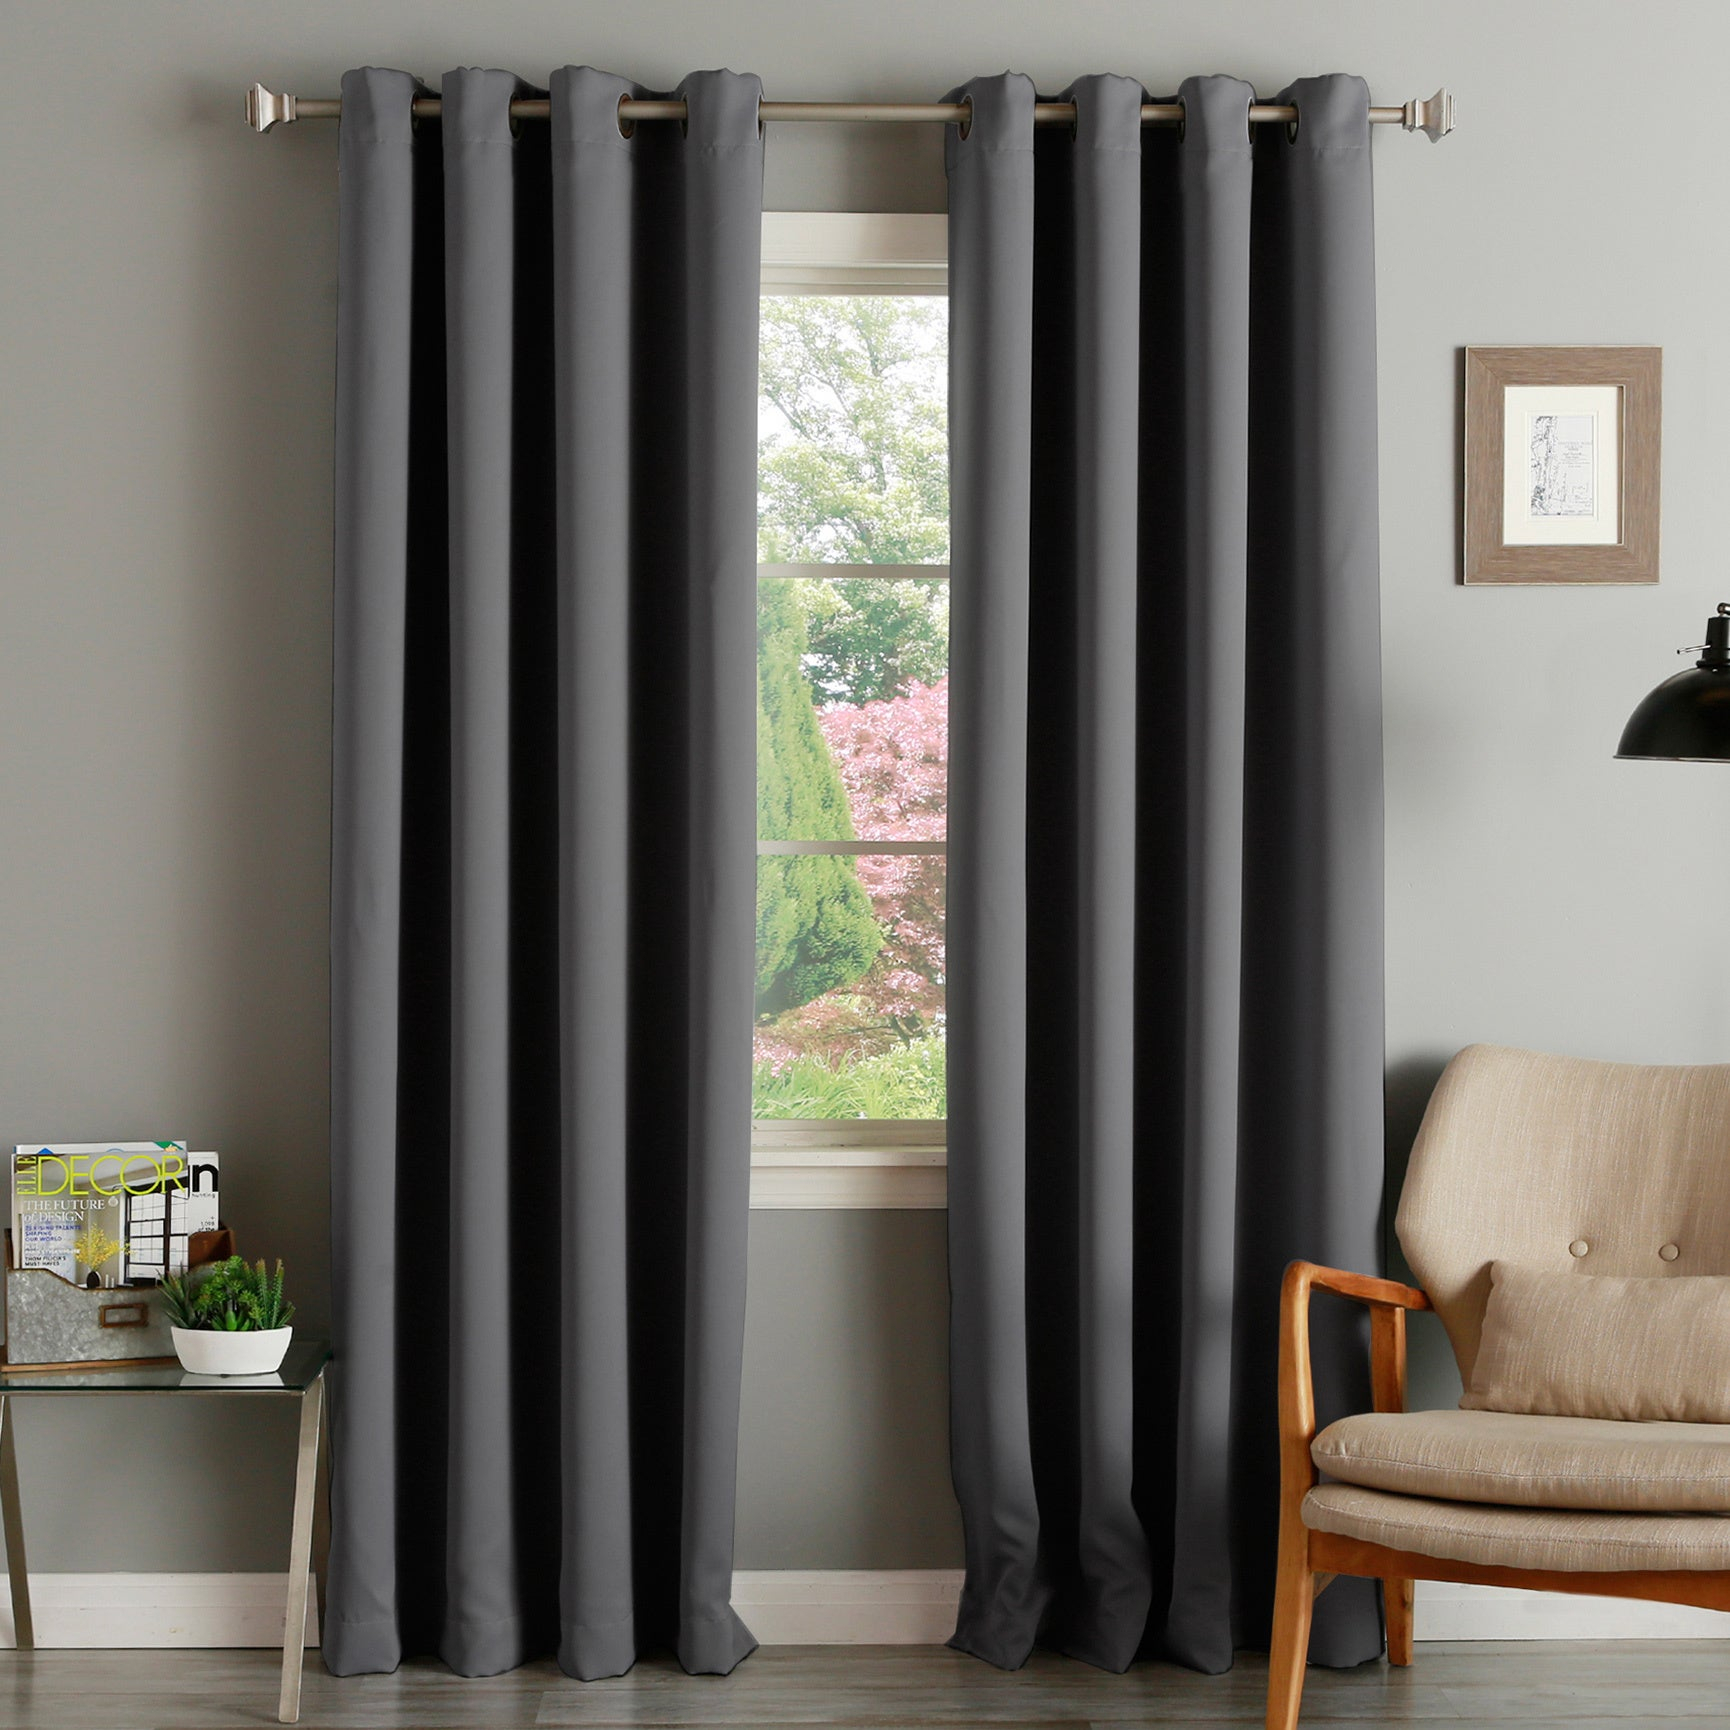 Aurora Home Thermal Insulated Blackout Grommet Top 84 Inch Curtain Panel Pair – 52 X 84 Throughout Thermal Insulated Blackout Grommet Top Curtain Panel Pairs (View 2 of 30)